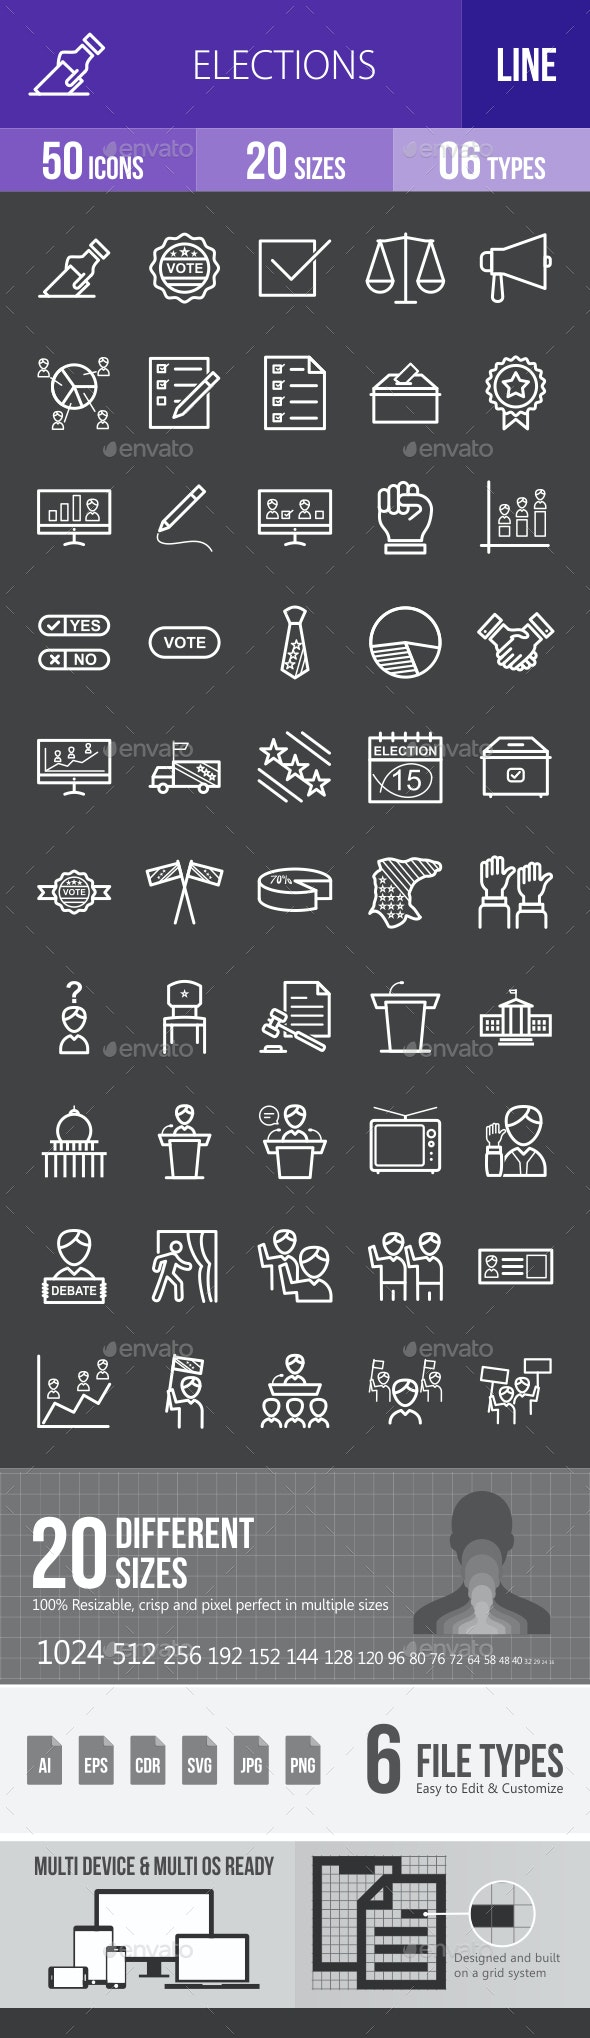 Elections Line Inverted Icons - Icons